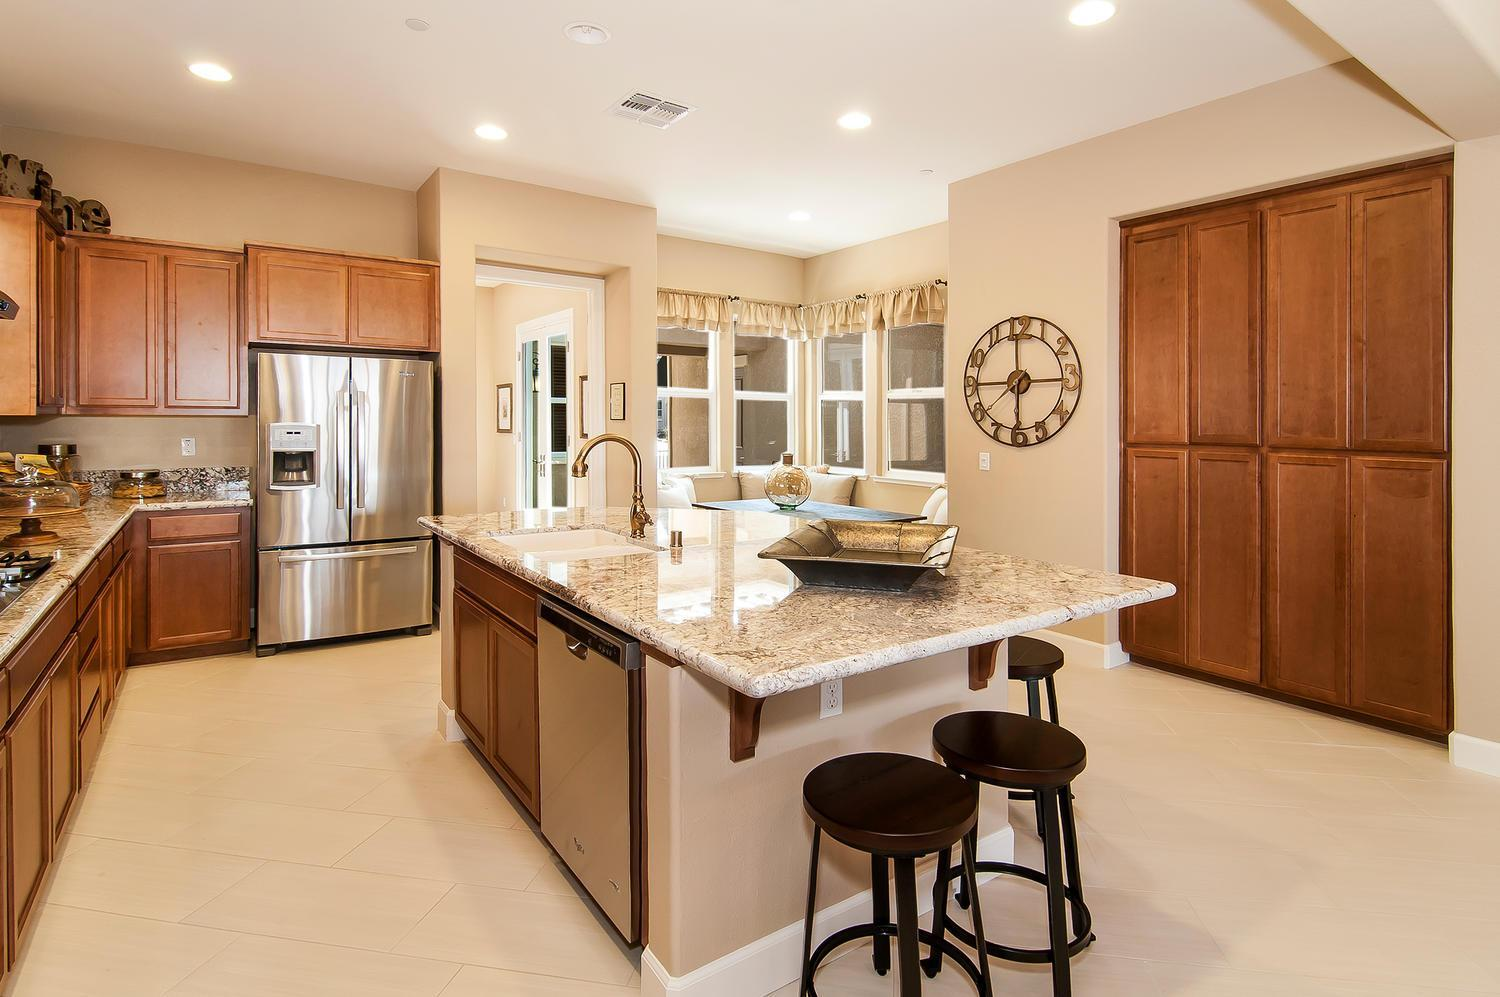 Kitchen featured in the Residence 6 By Legacy Homes in Santa Cruz, CA